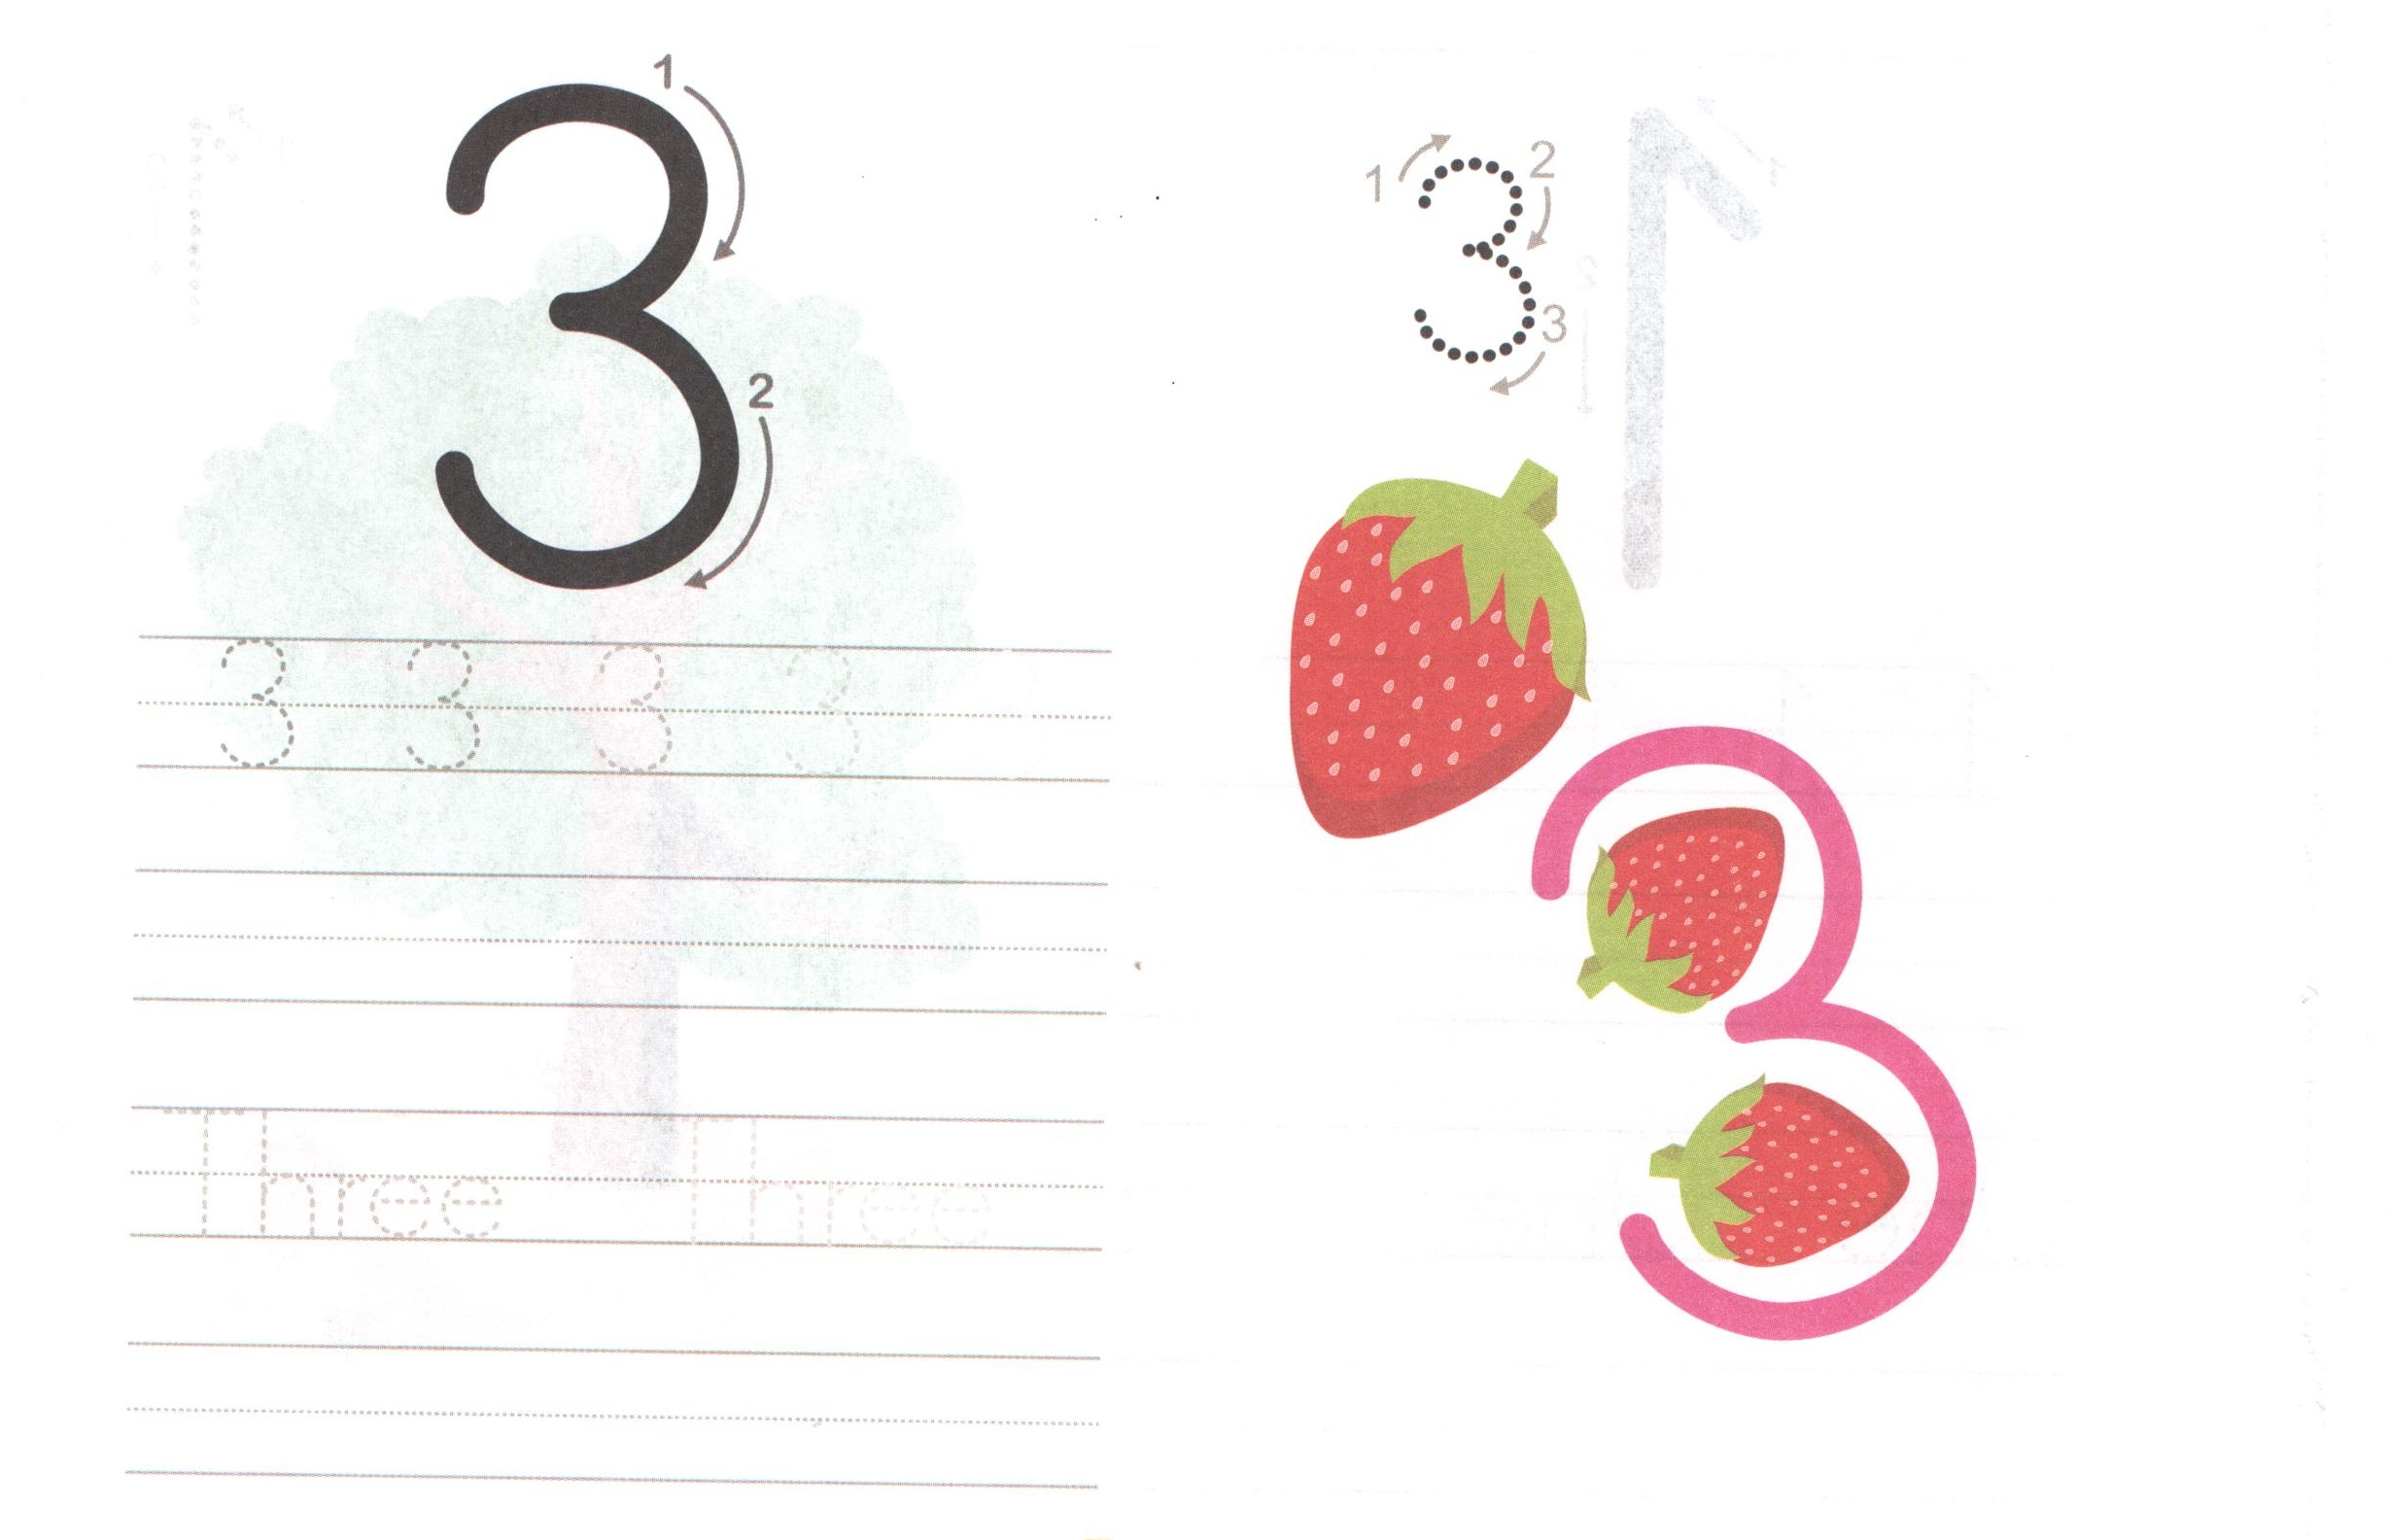 Three 3 Worksheet For Learning Numbers